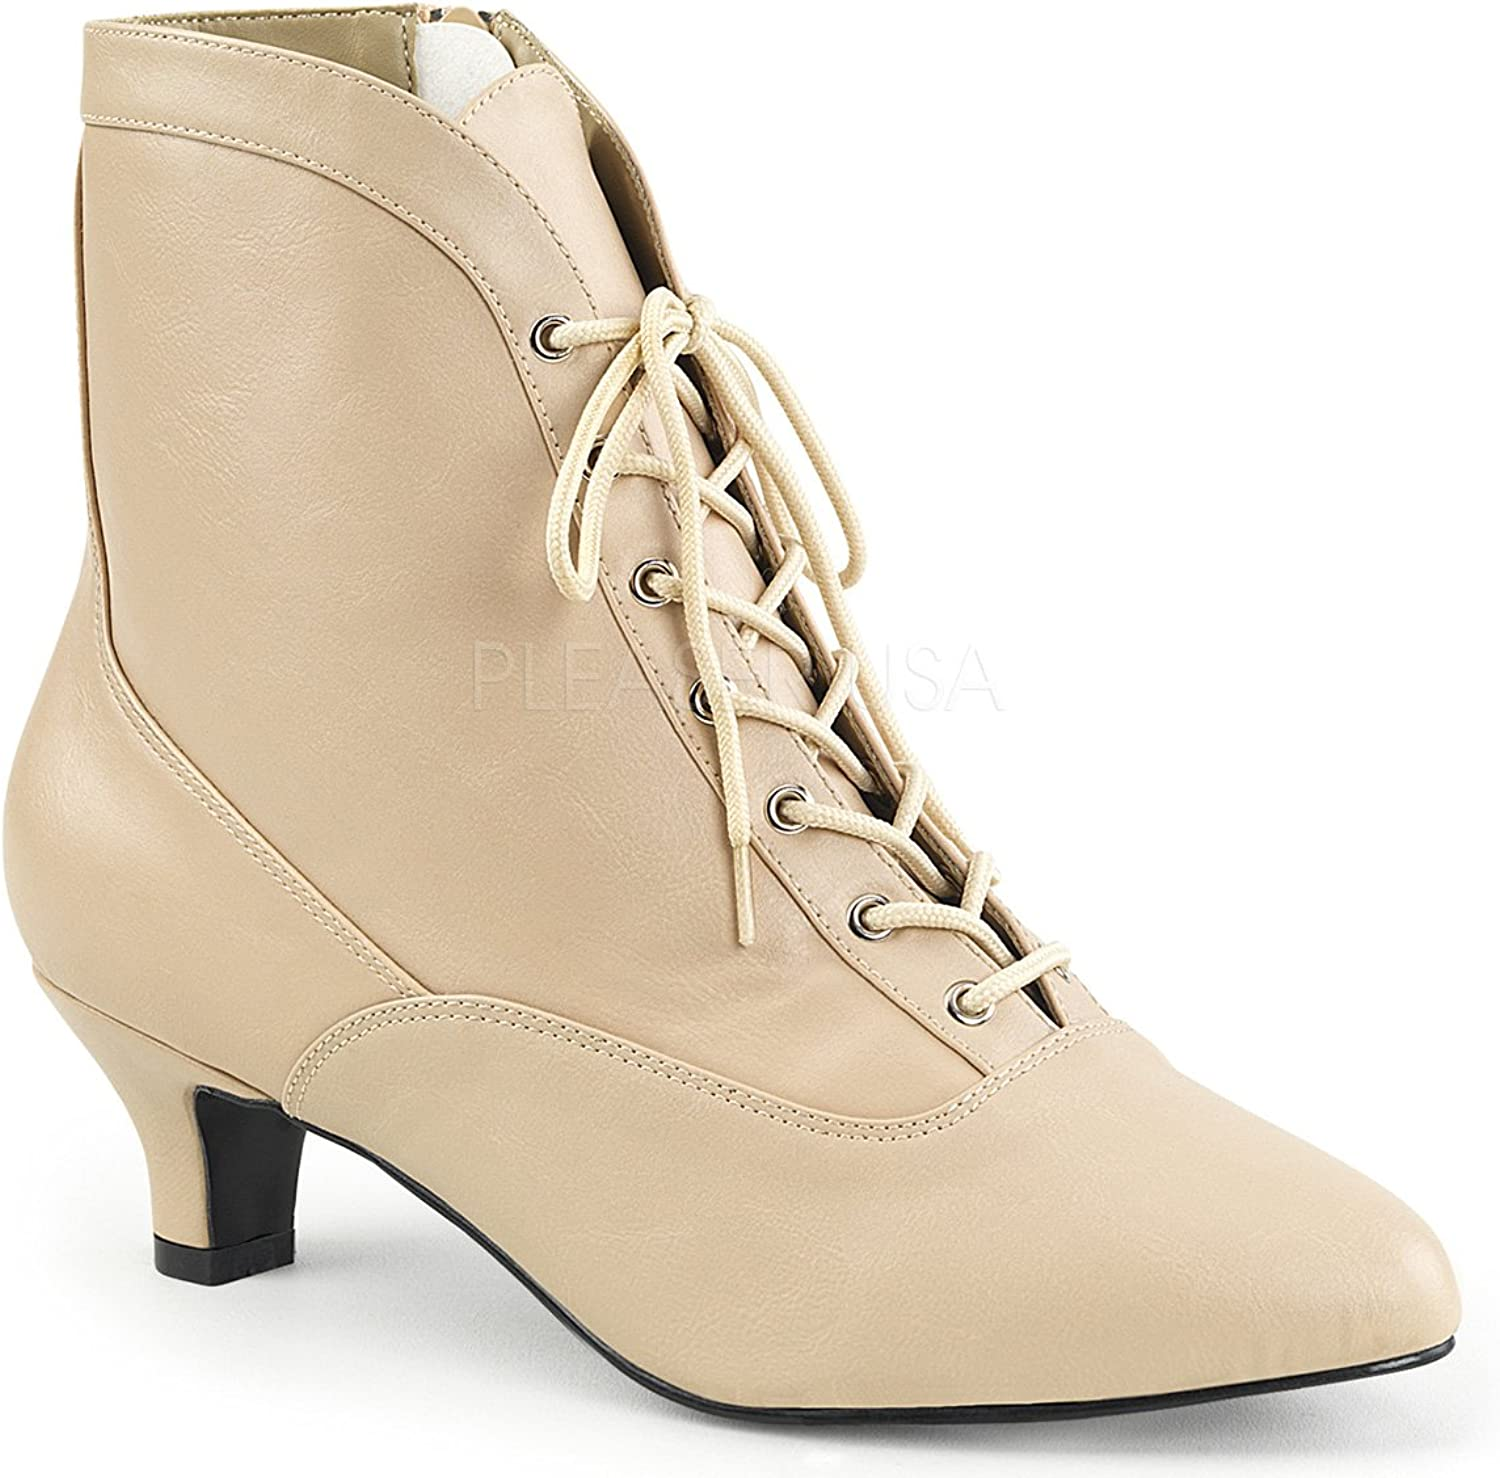 Pleaser Pink Label Fab-1005 Boots-Cream-10